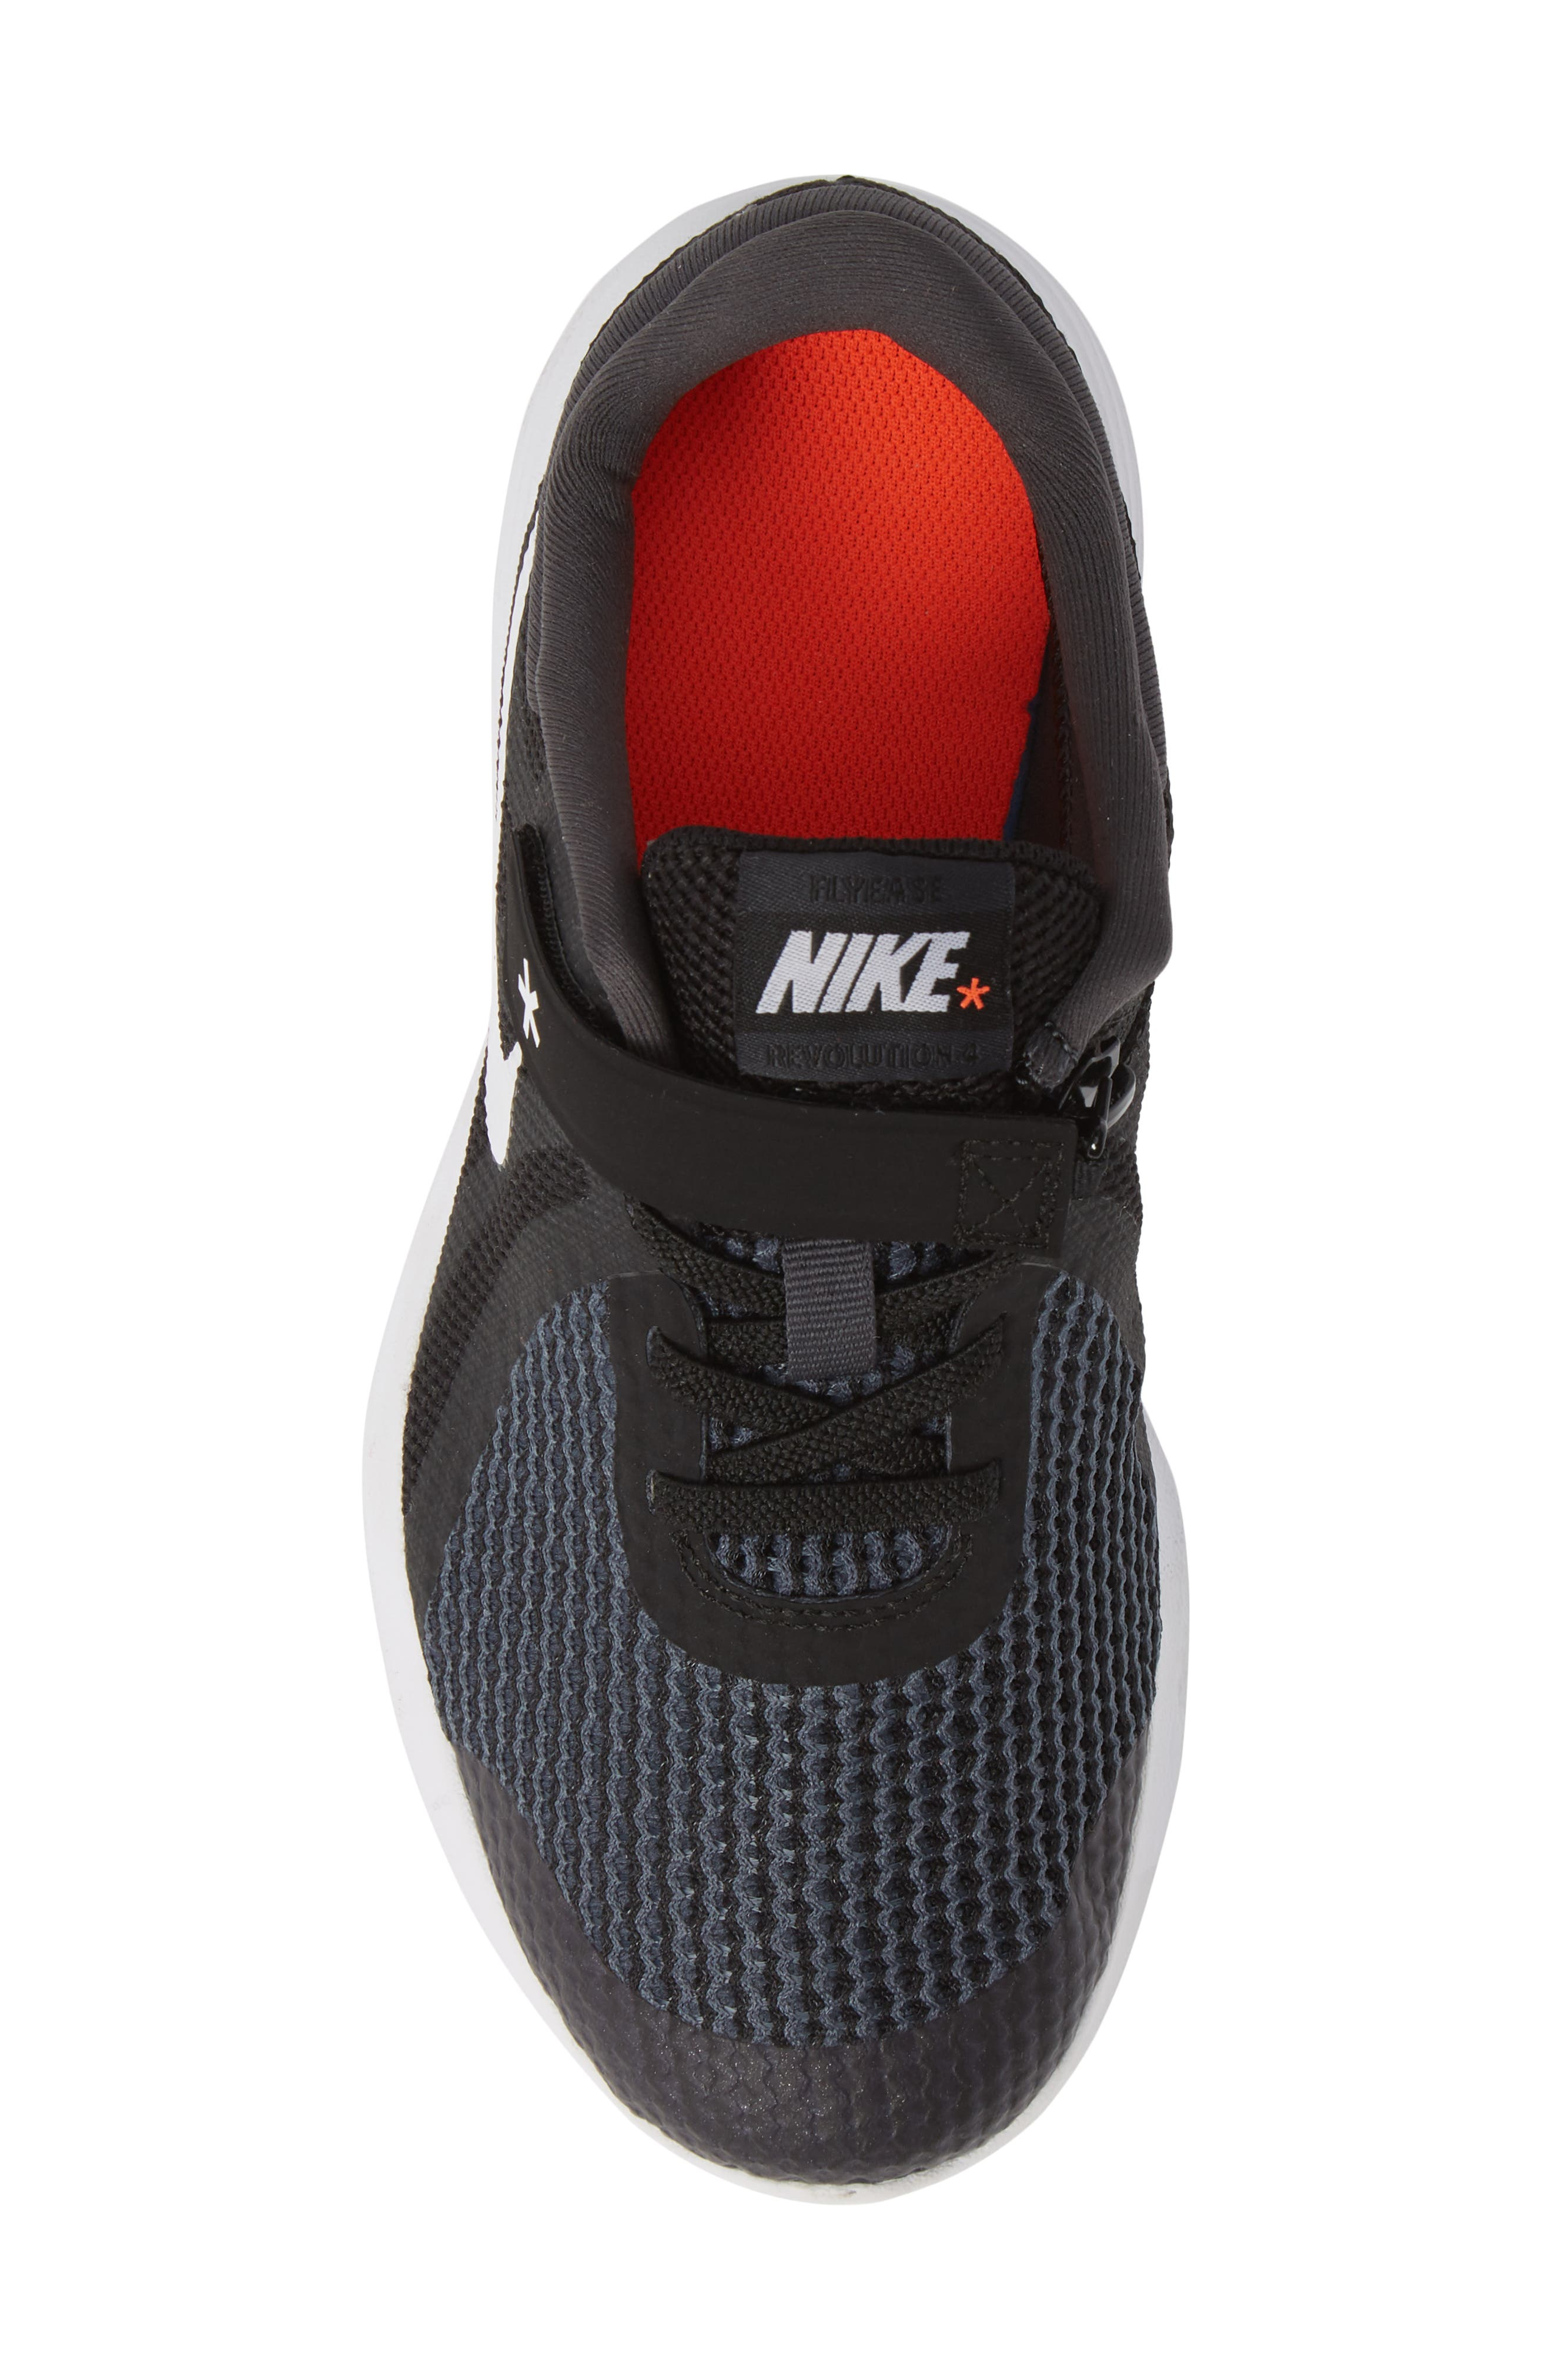 NIKE, Revolution 4 Flyease 4E Sneaker, Alternate thumbnail 5, color, BLACK ANTHRACITE CRIMSON